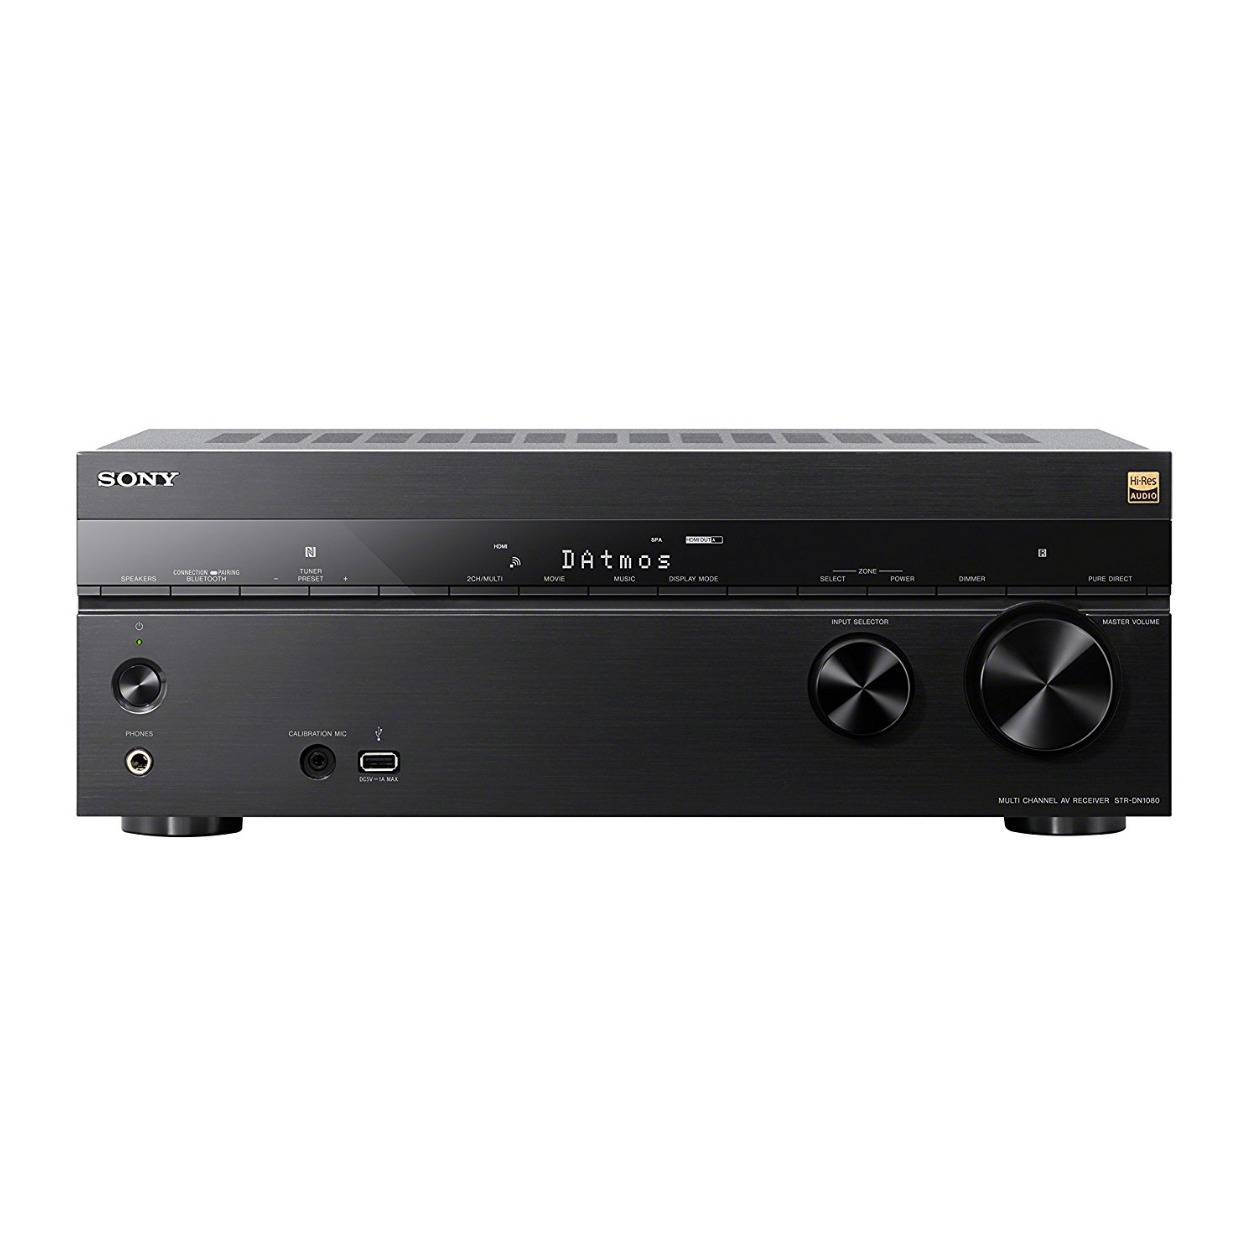 Sony STR-DN1080 7.2-Channel Dolby Atmos Surround Sound Wi-Fi Network AV Home Theater Receiver